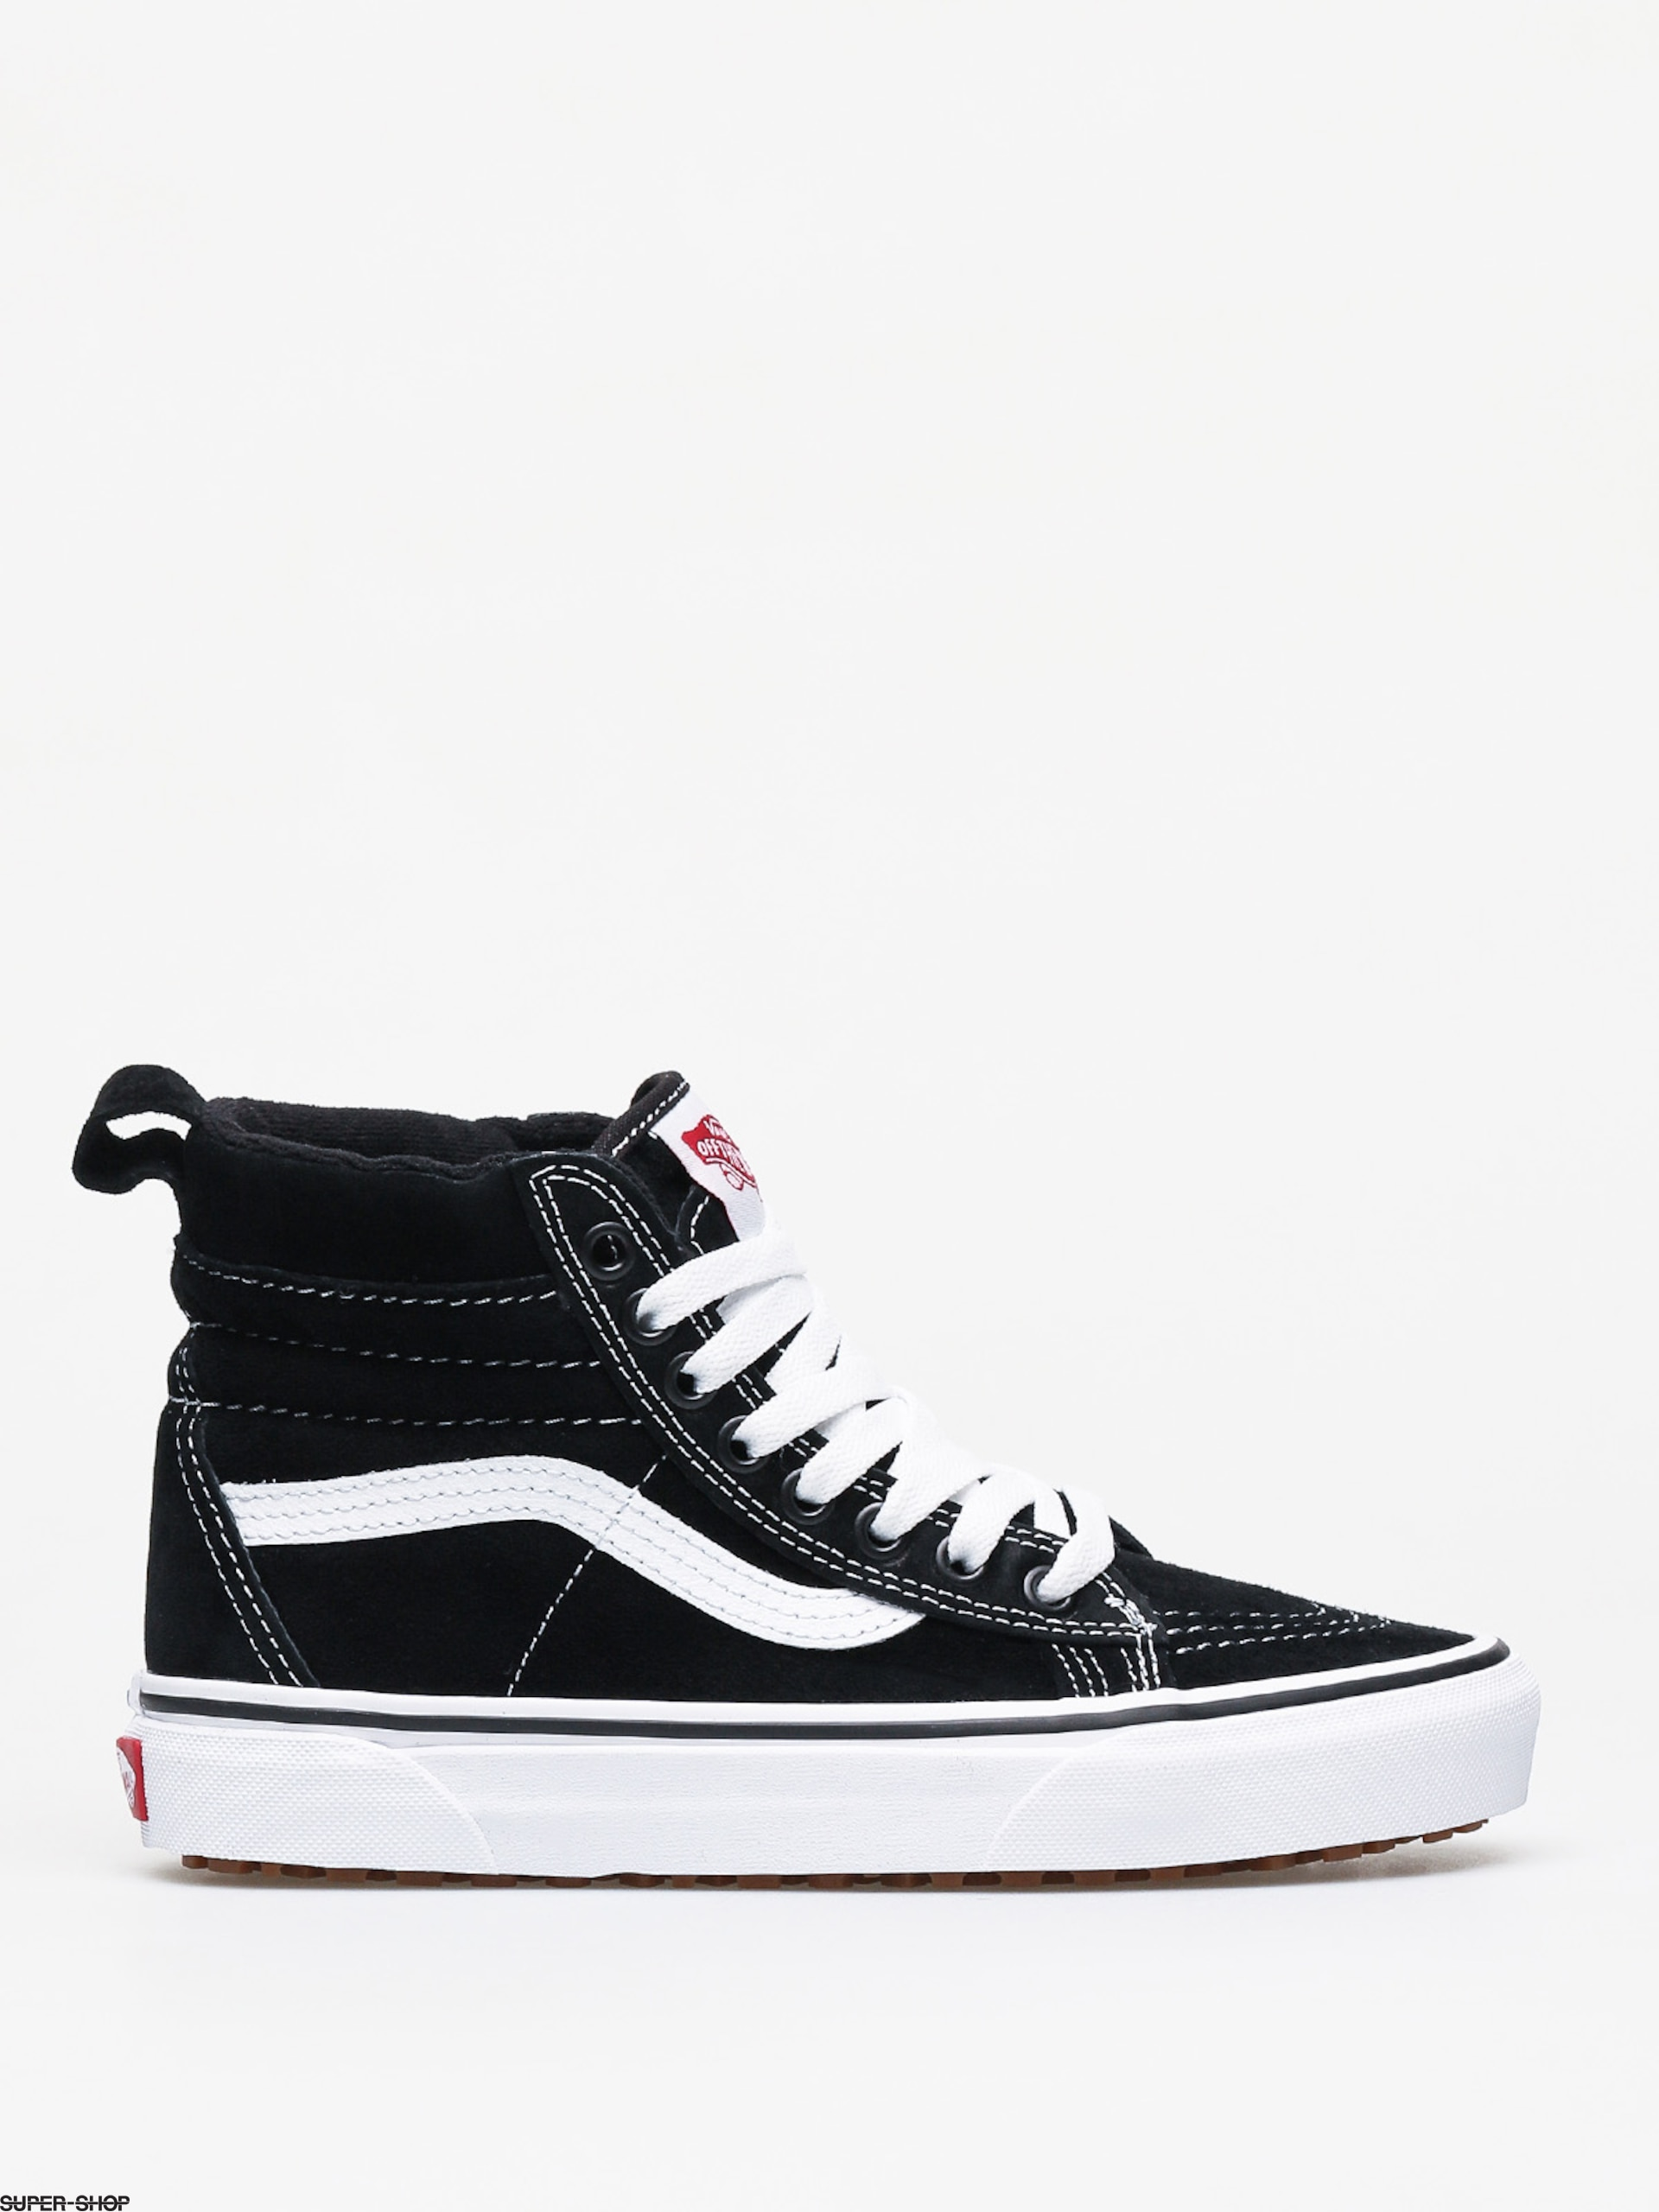 unequal in performance cheapest price hoard as a rare commodity Vans Sk8 Hi Mte Shoes (black/true white)